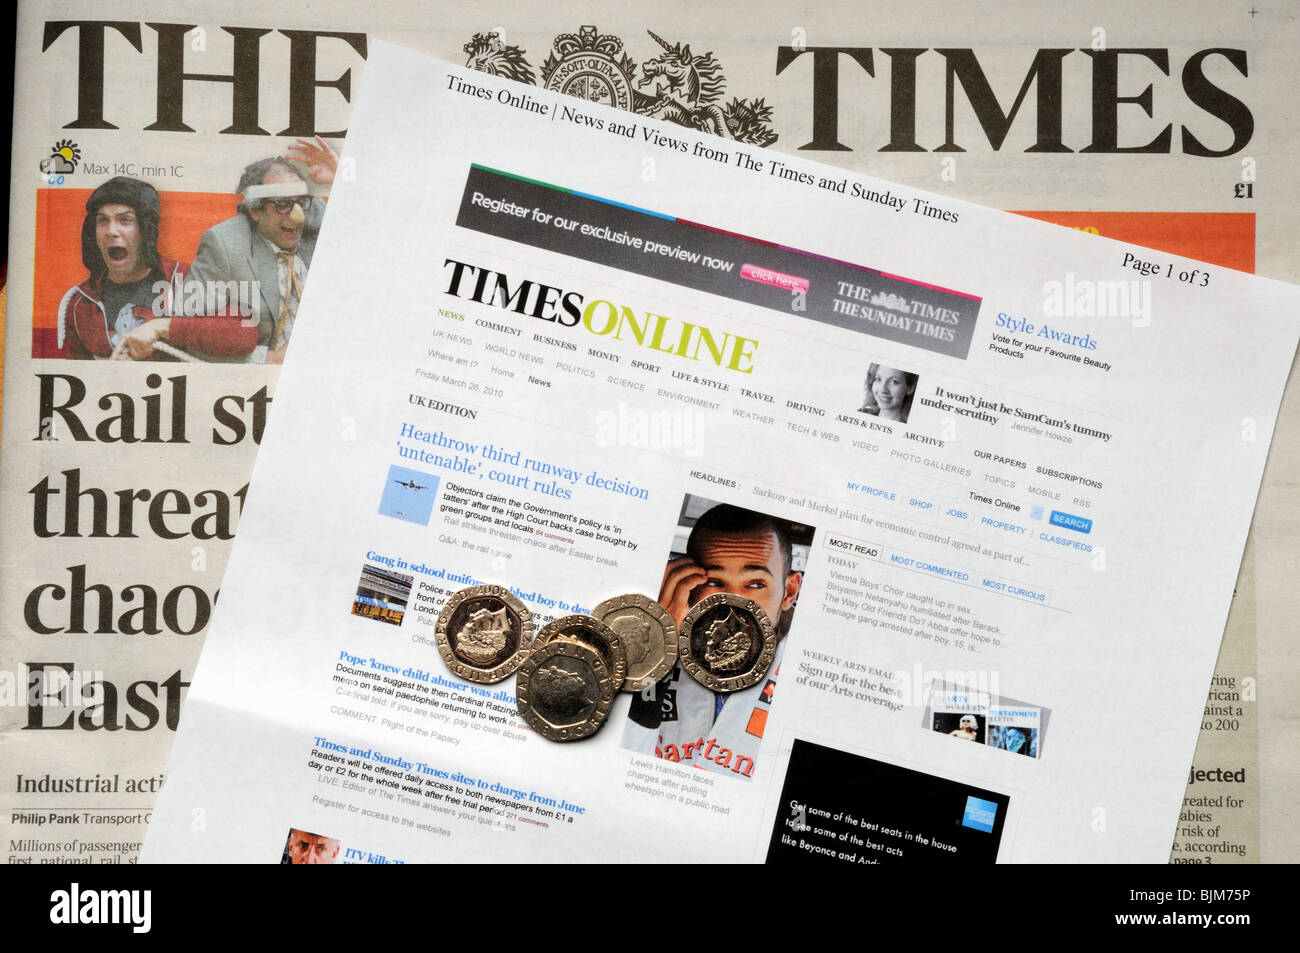 The Time Newspaper and On Line Times. - Stock Image